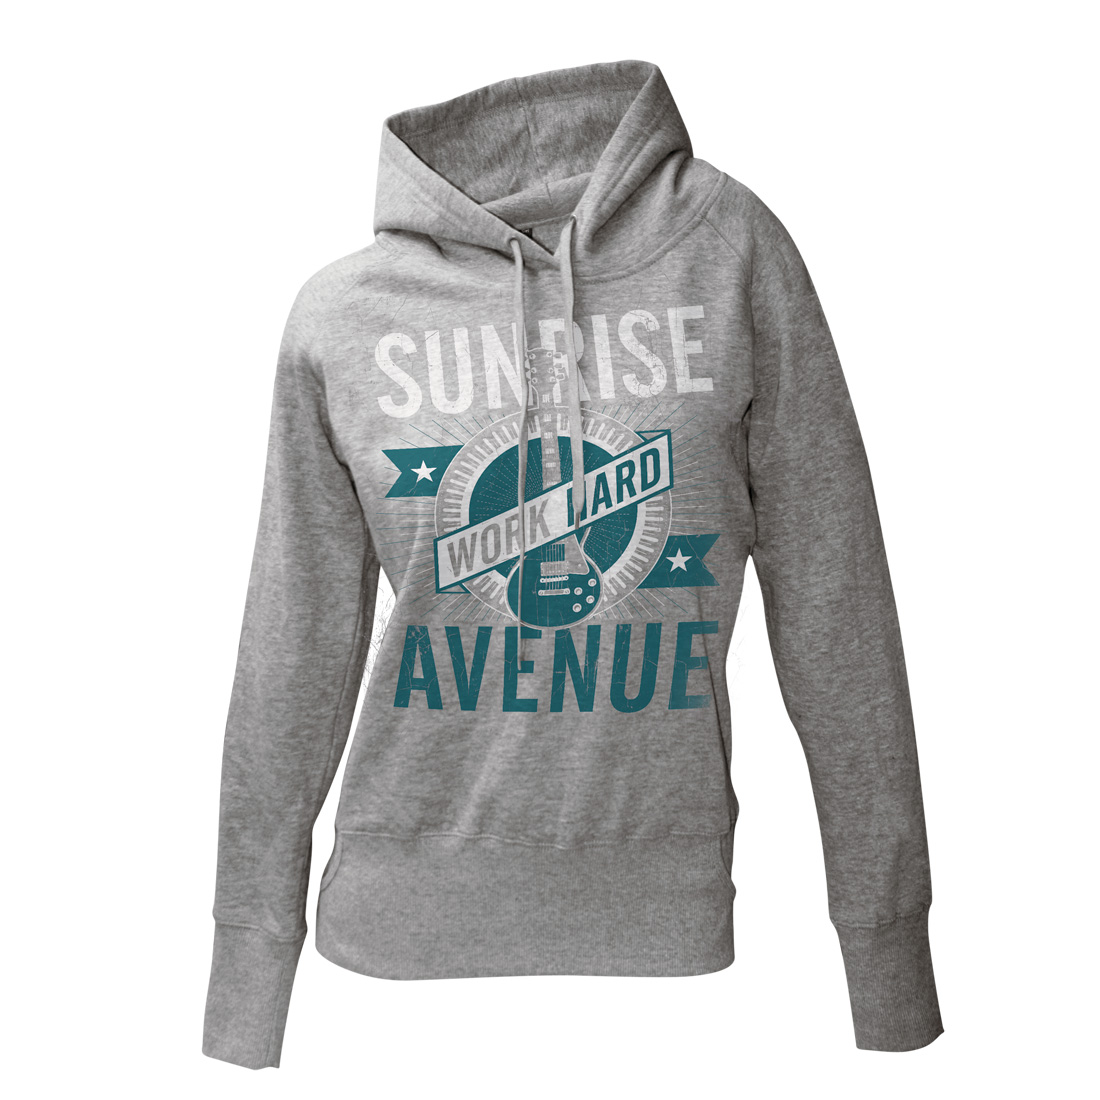 Sunrise Avenue Sunrise Avenue Shop Work